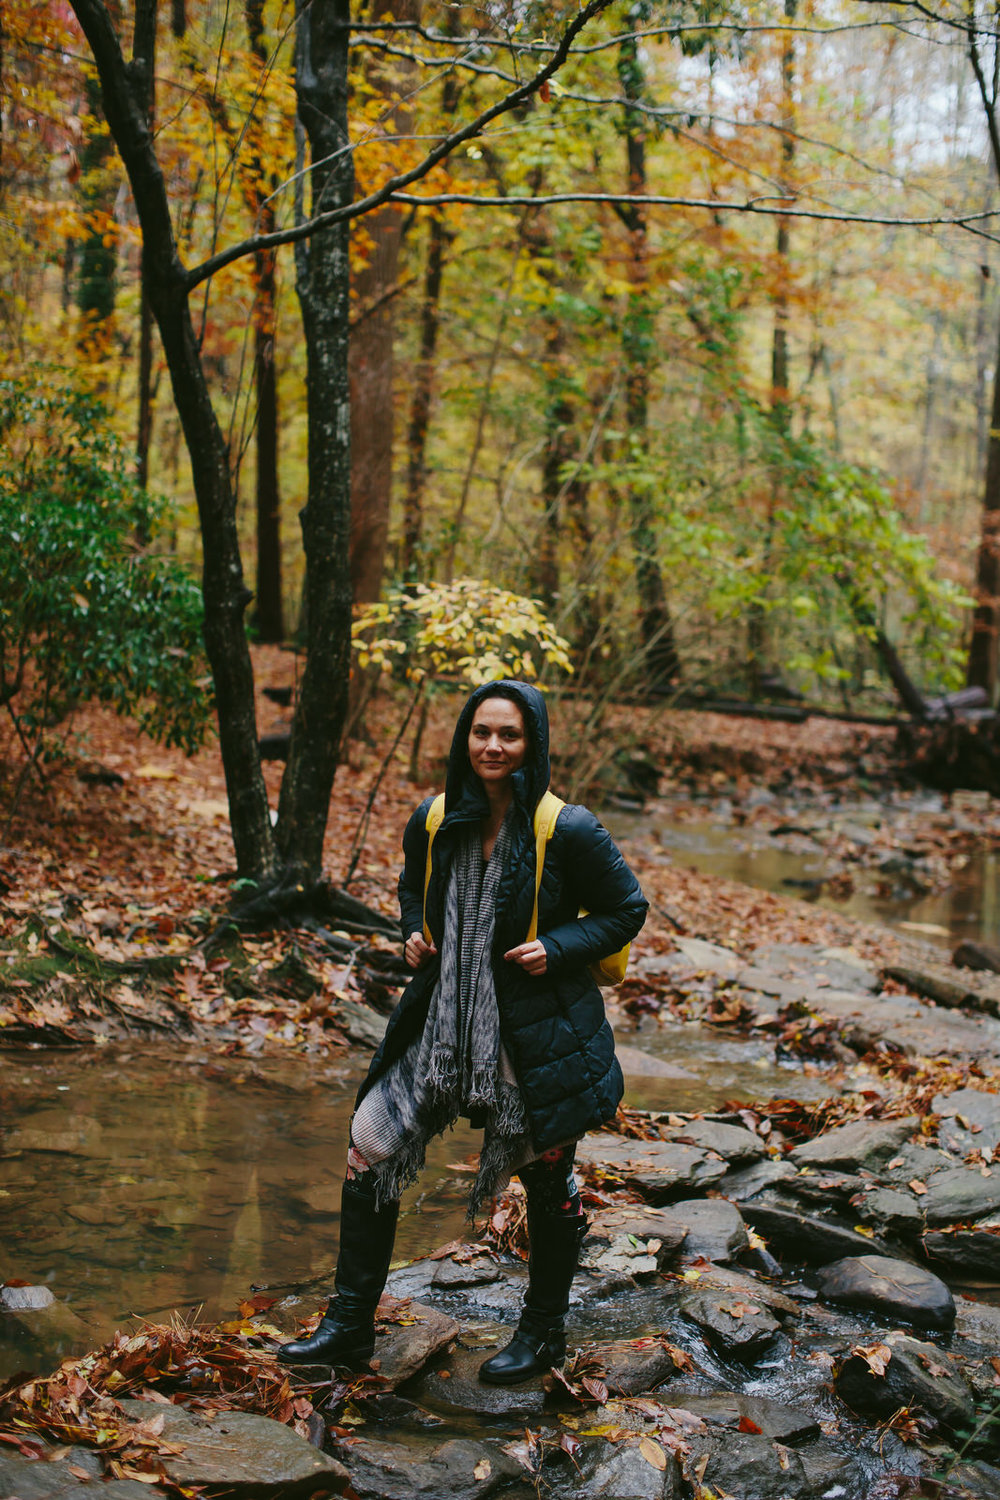 me hiking across a creek in roswell georgia in the fall foilage